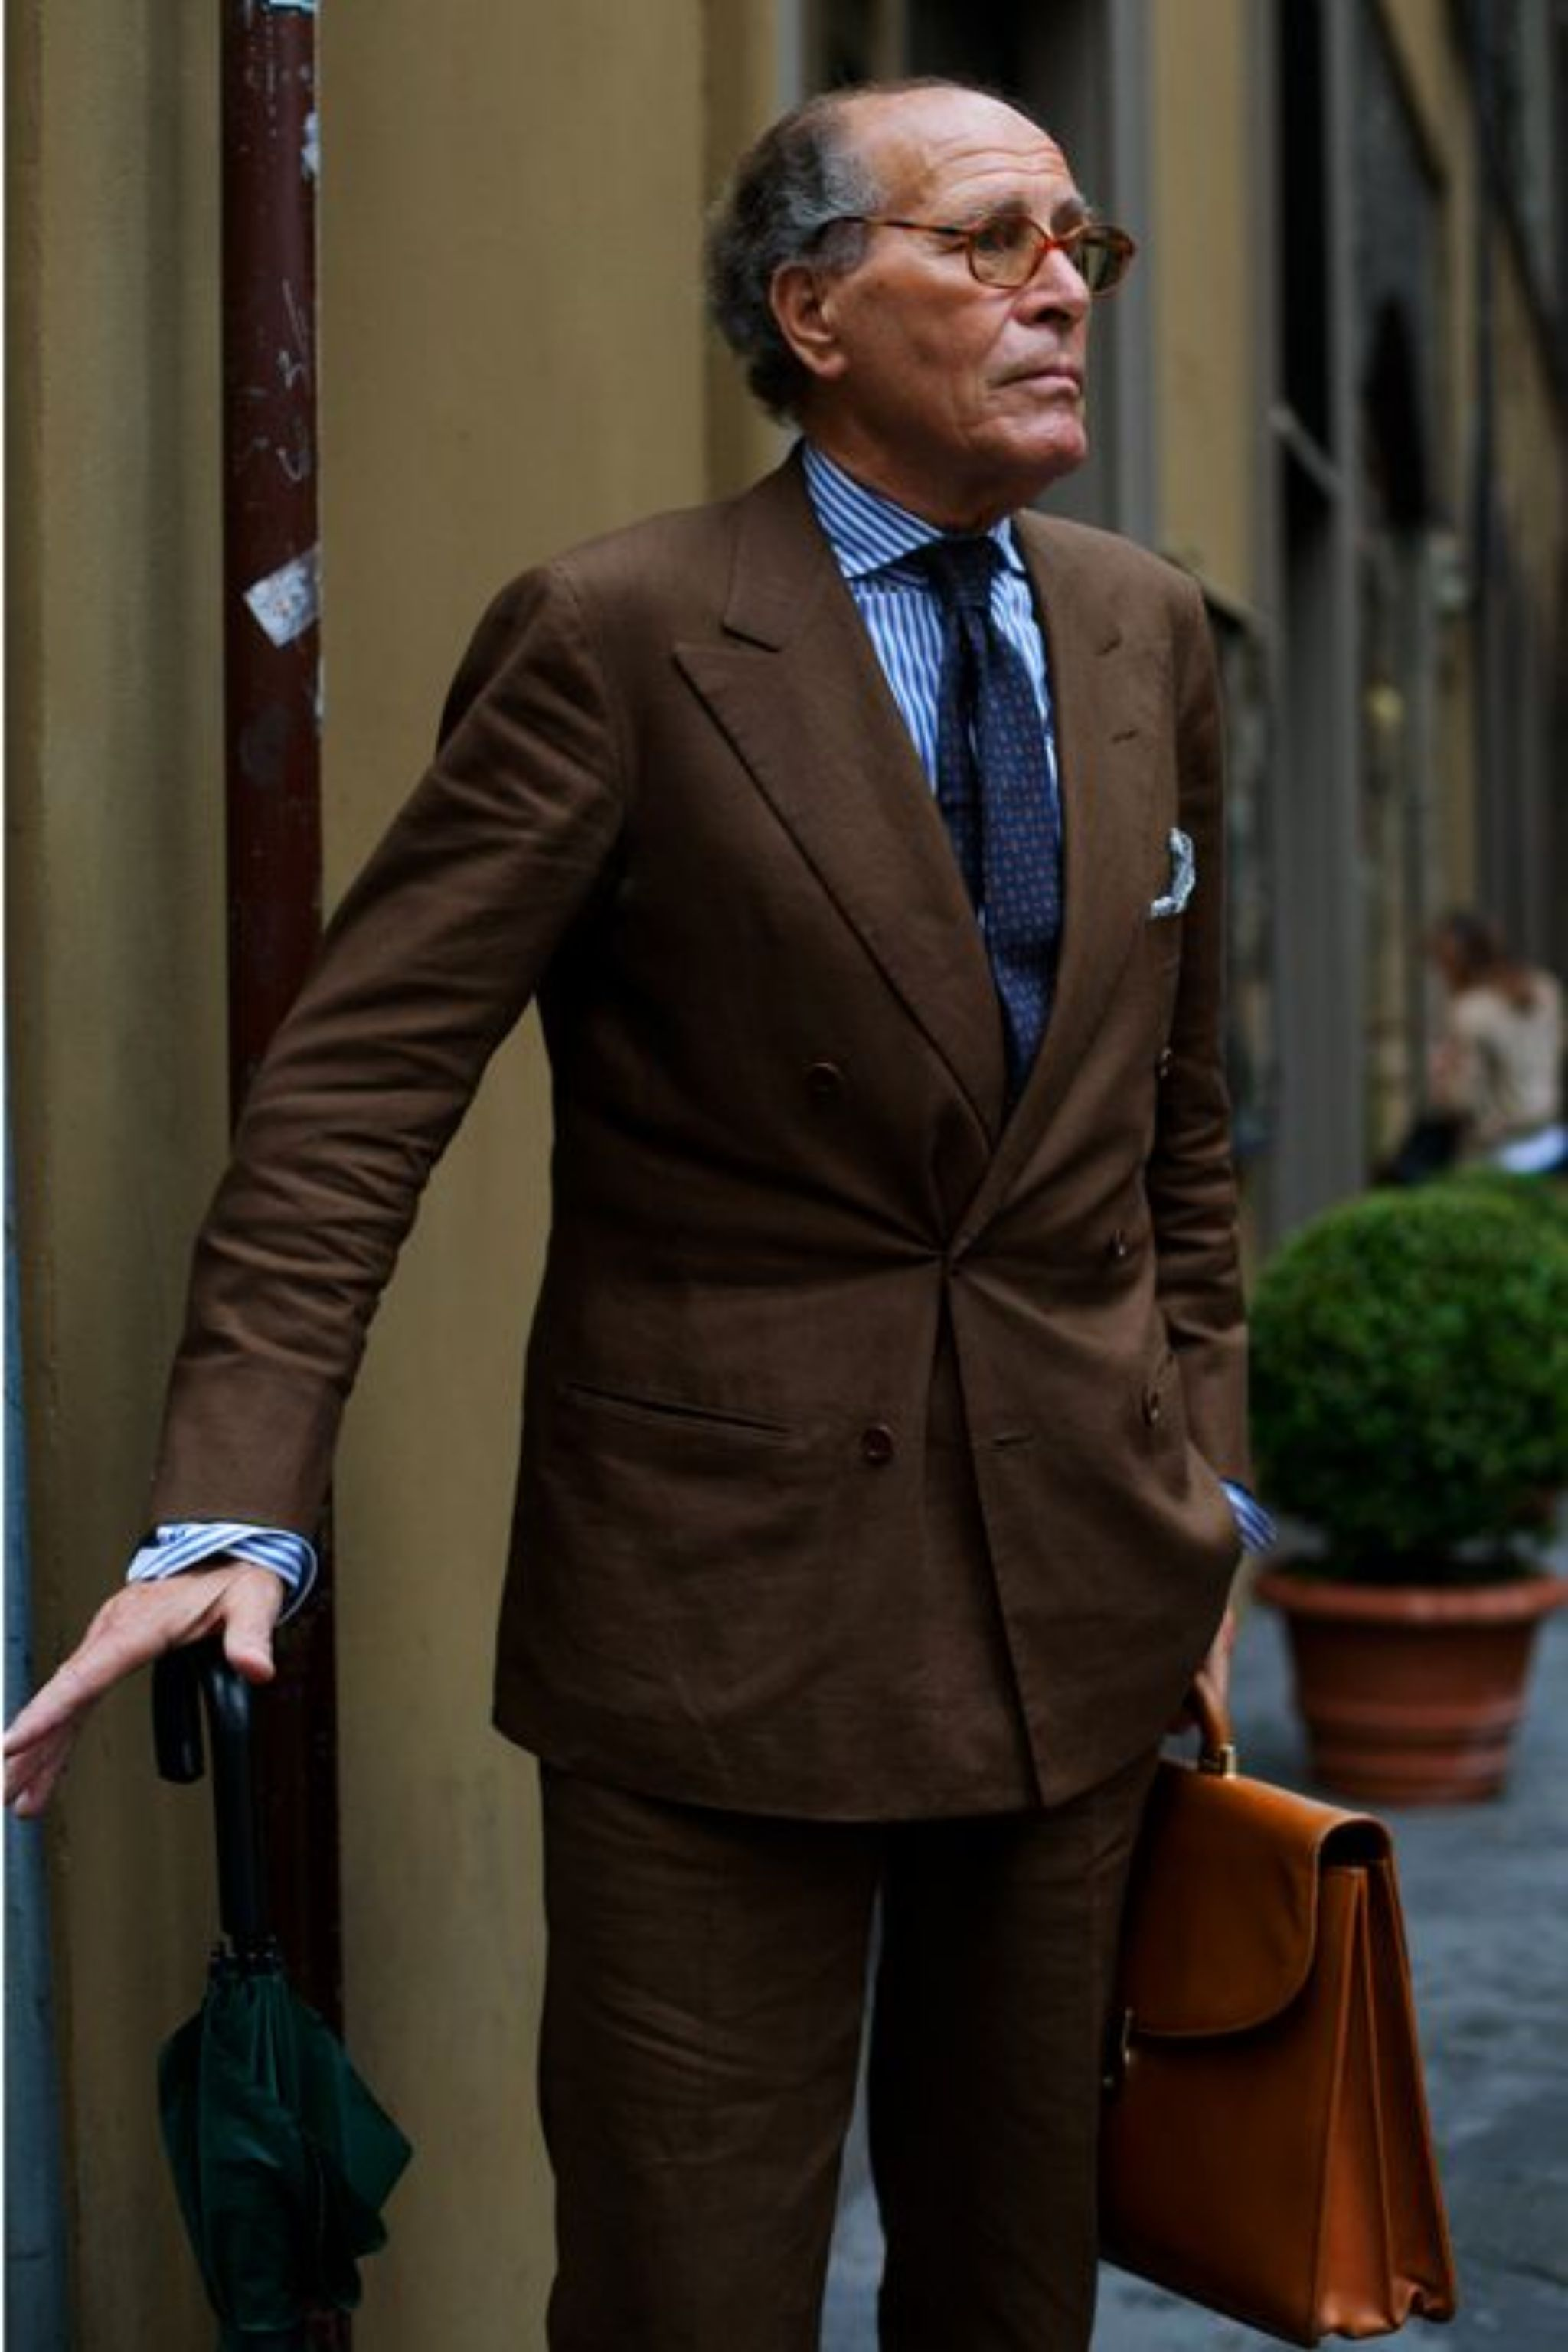 Brown suit with light blue shirt and blue tie